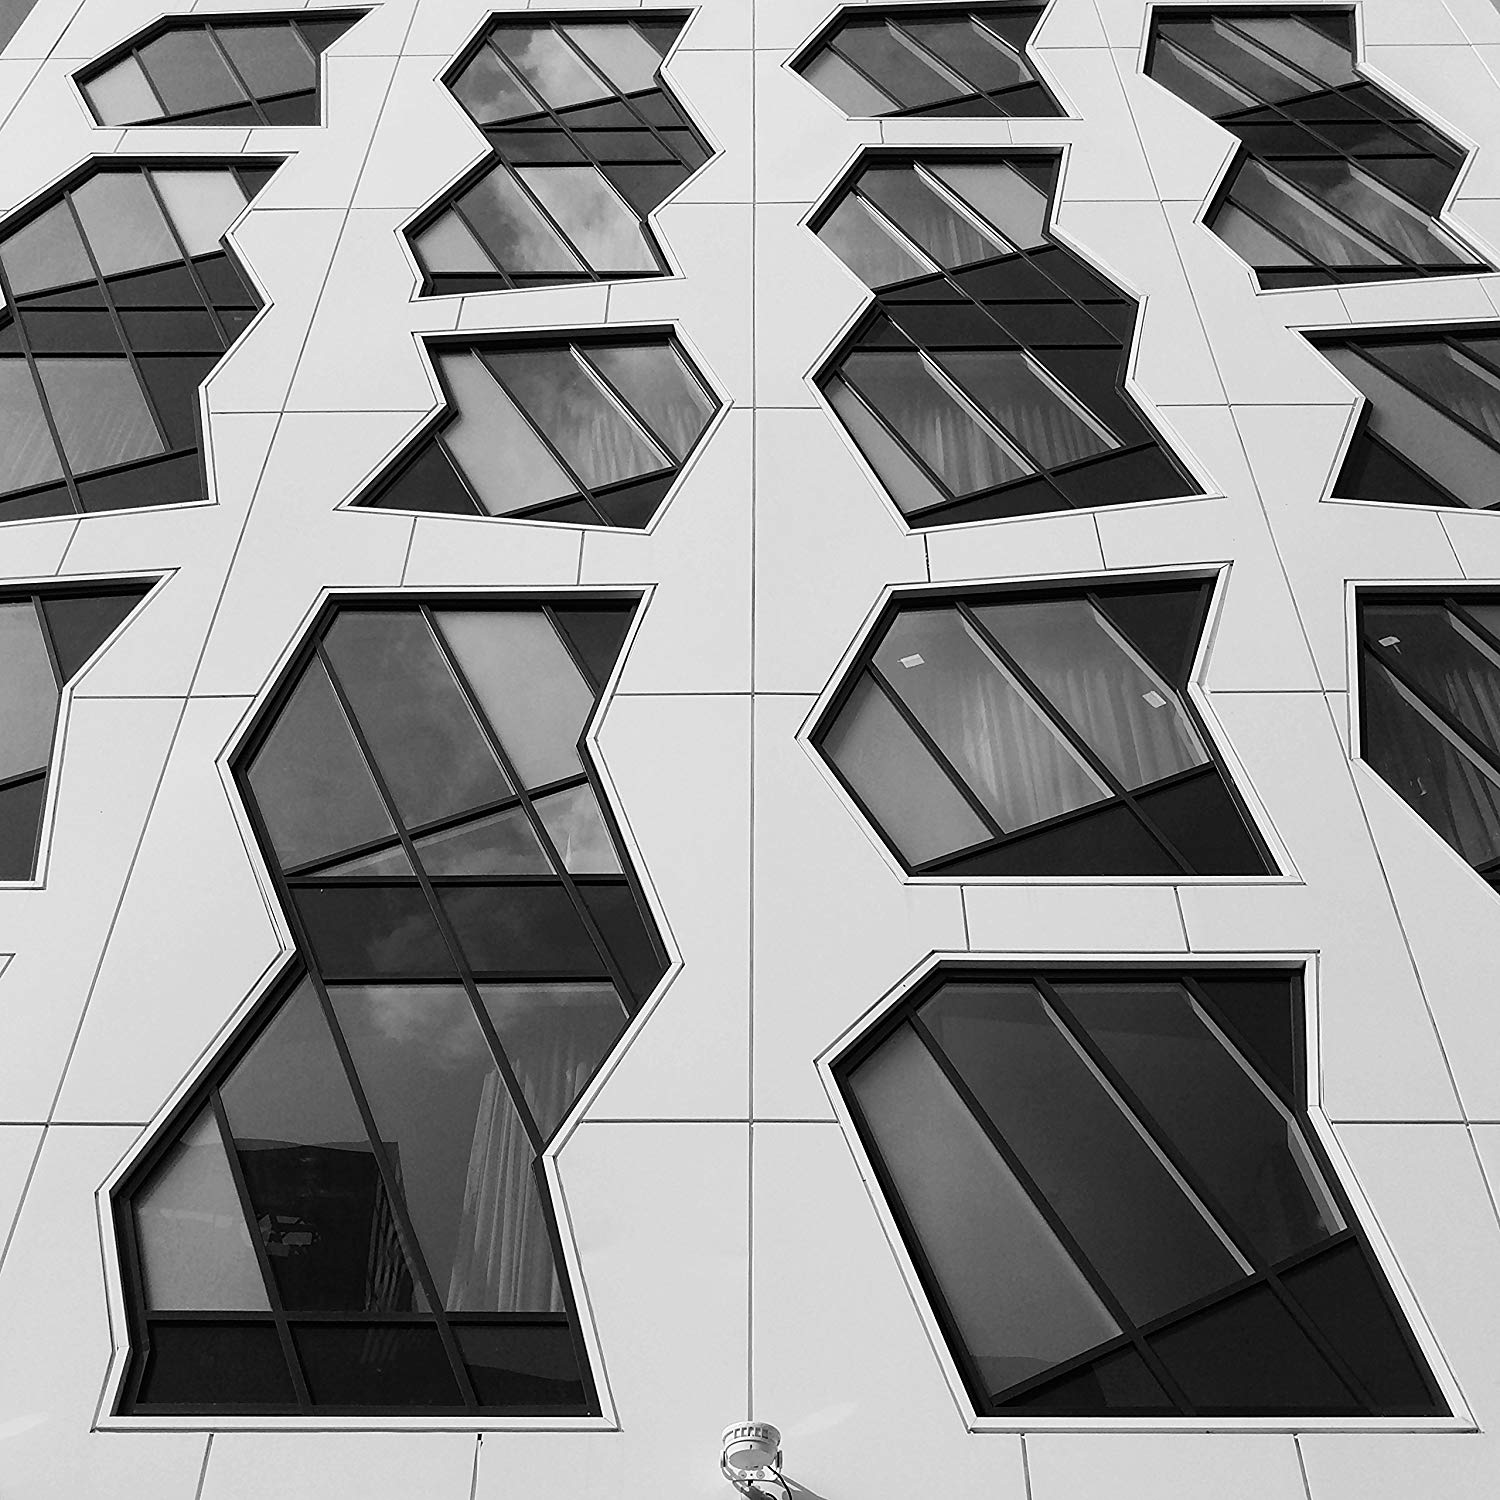 Window Print, Window Photography, Window Wall Art, Window Photo, Architecture Photo, Architecture Wall, Architecture, London Architecture